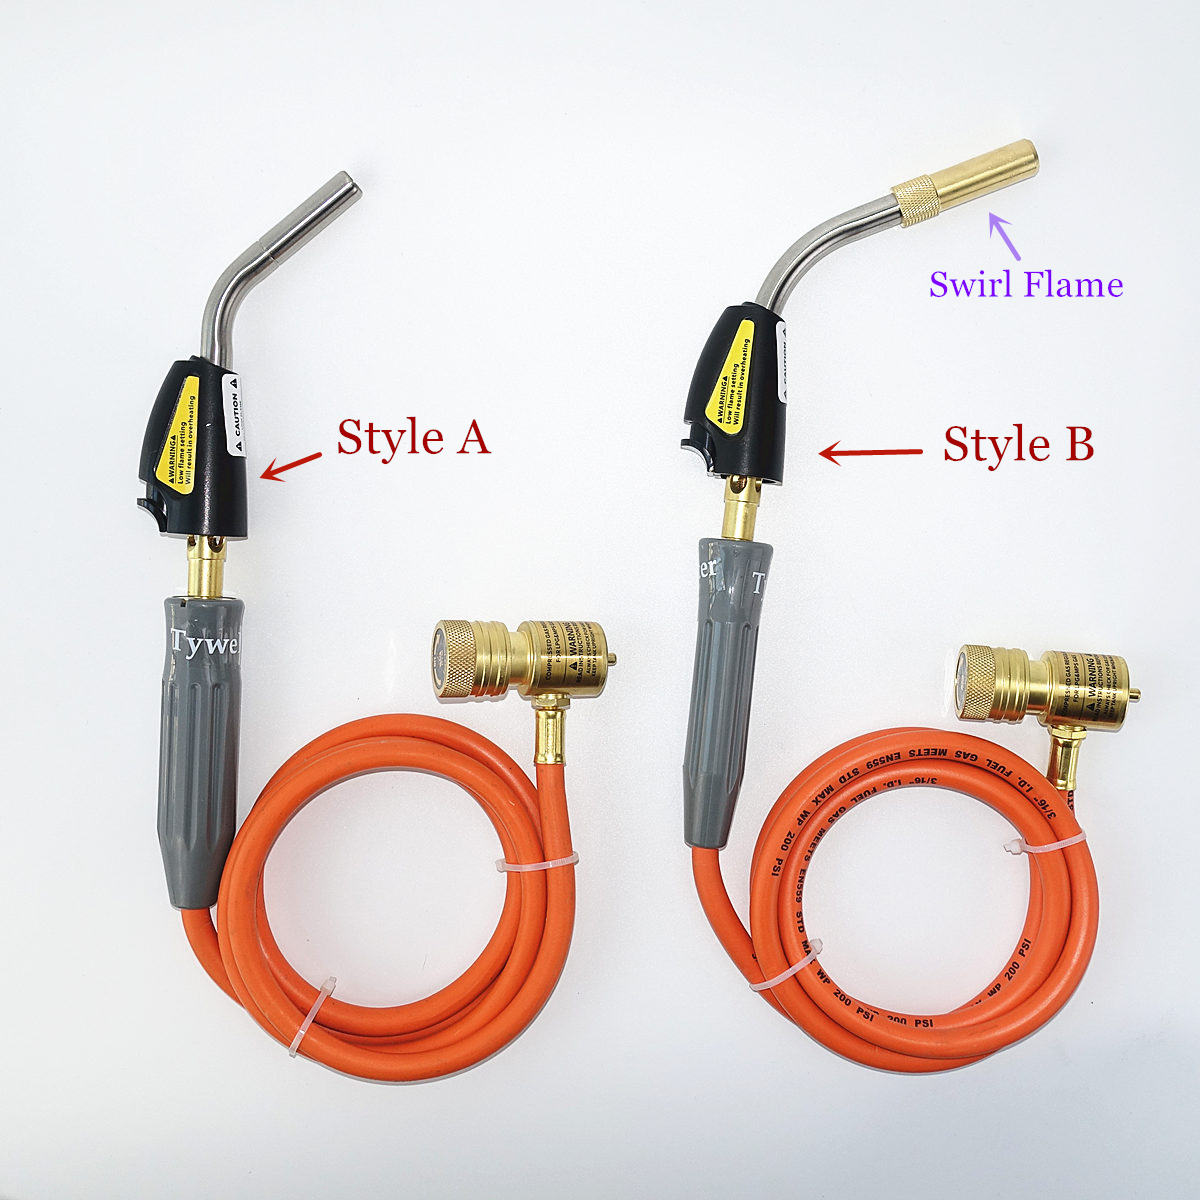 Braze Welding Torch Self Ignition 1 5m hose CGA600 connection Gas Torch Hand Propane MAPP Torch